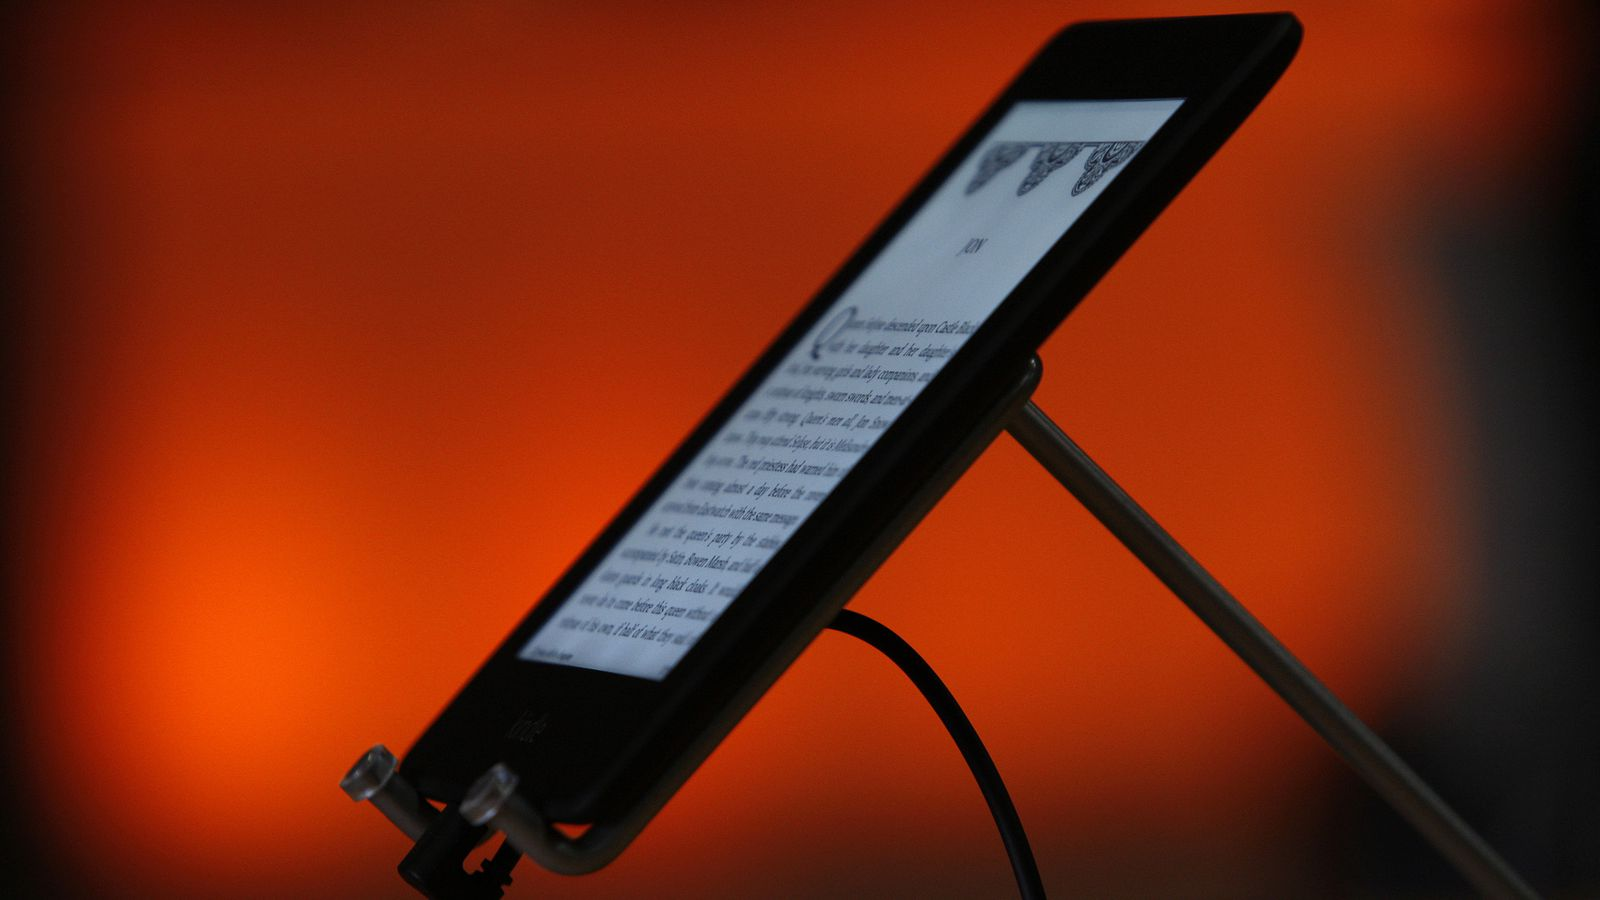 7 things Kindle highlights tell us about readers